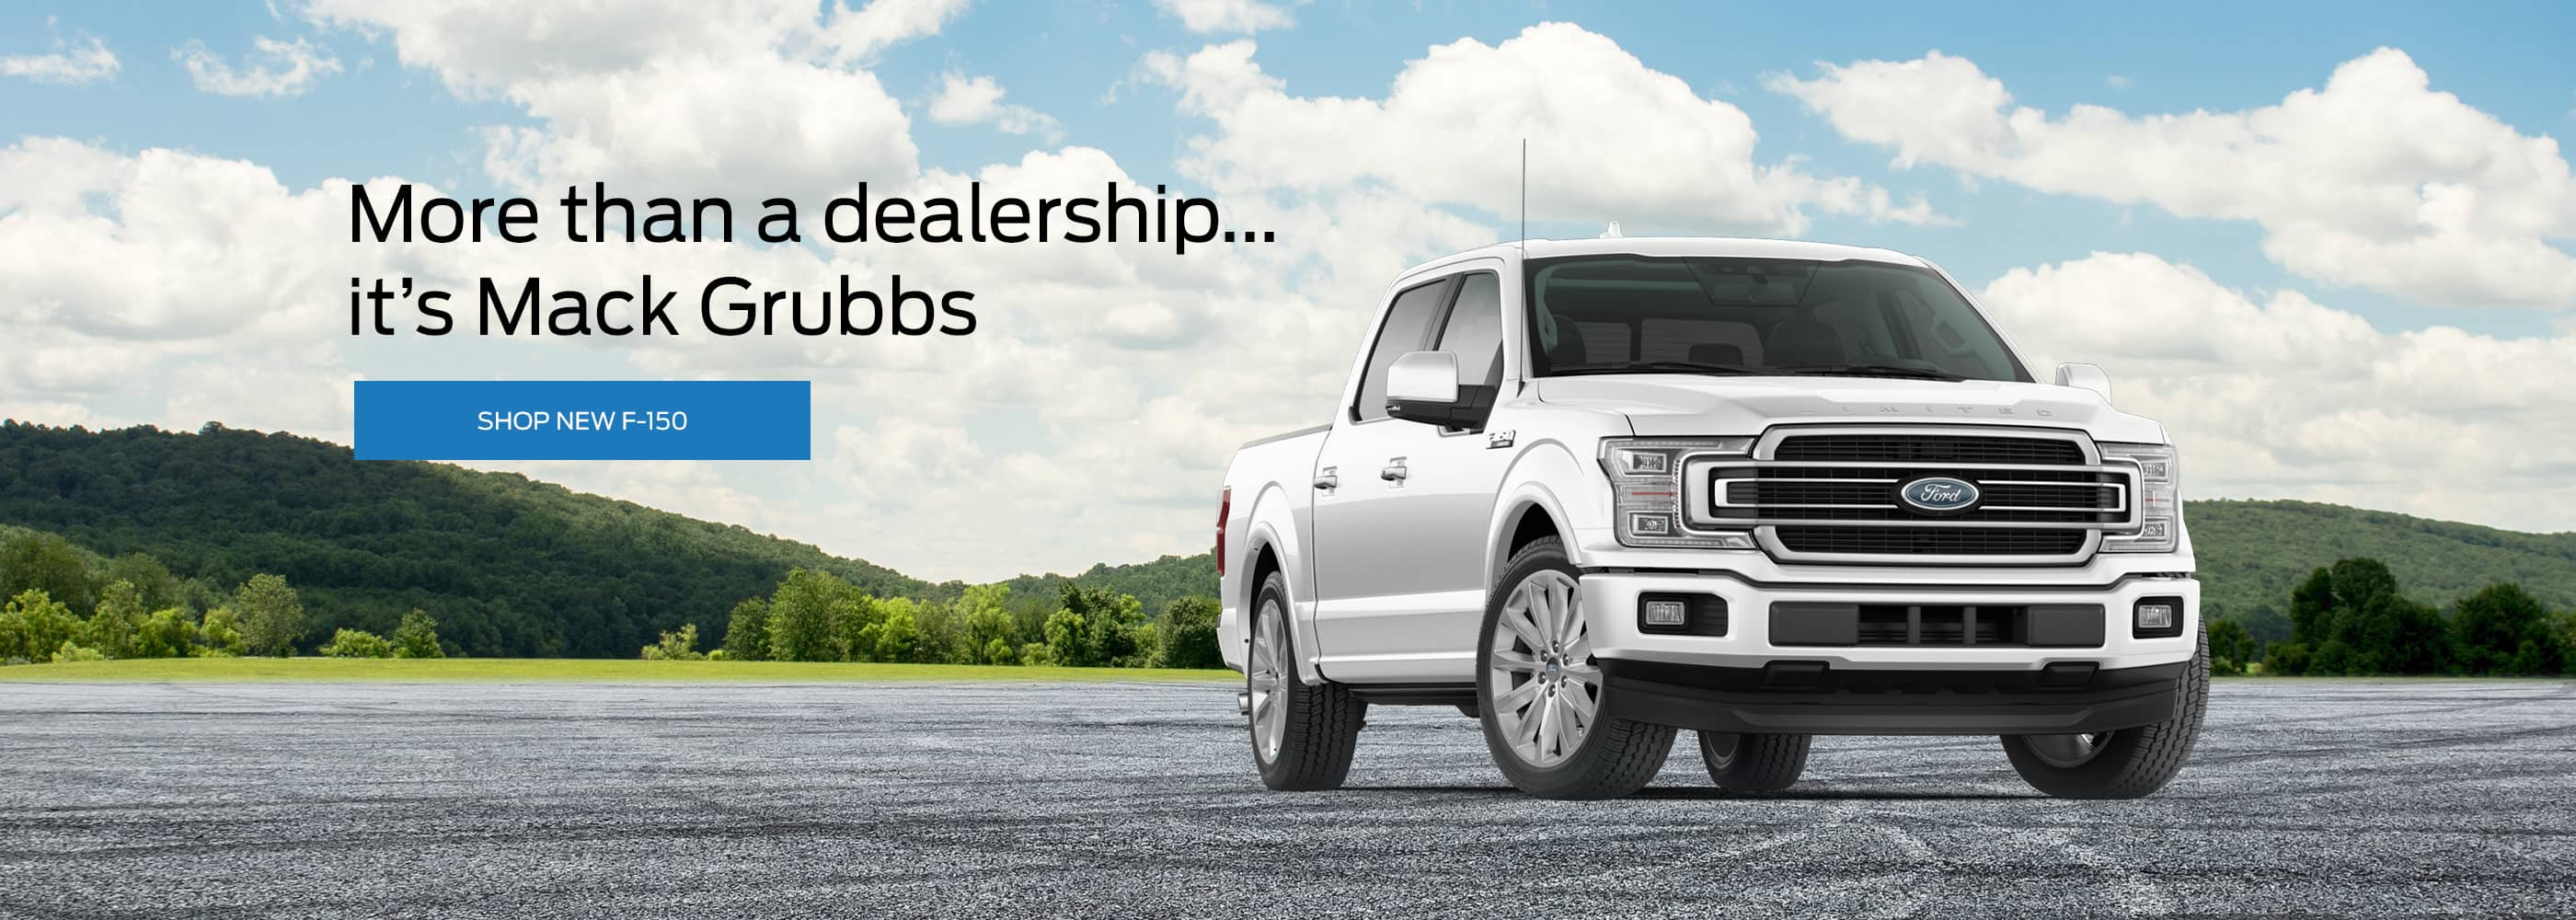 Ford Dealerships In Mississippi >> Mack Grubbs Ford New And Used Ford Dealer Columbia Ms